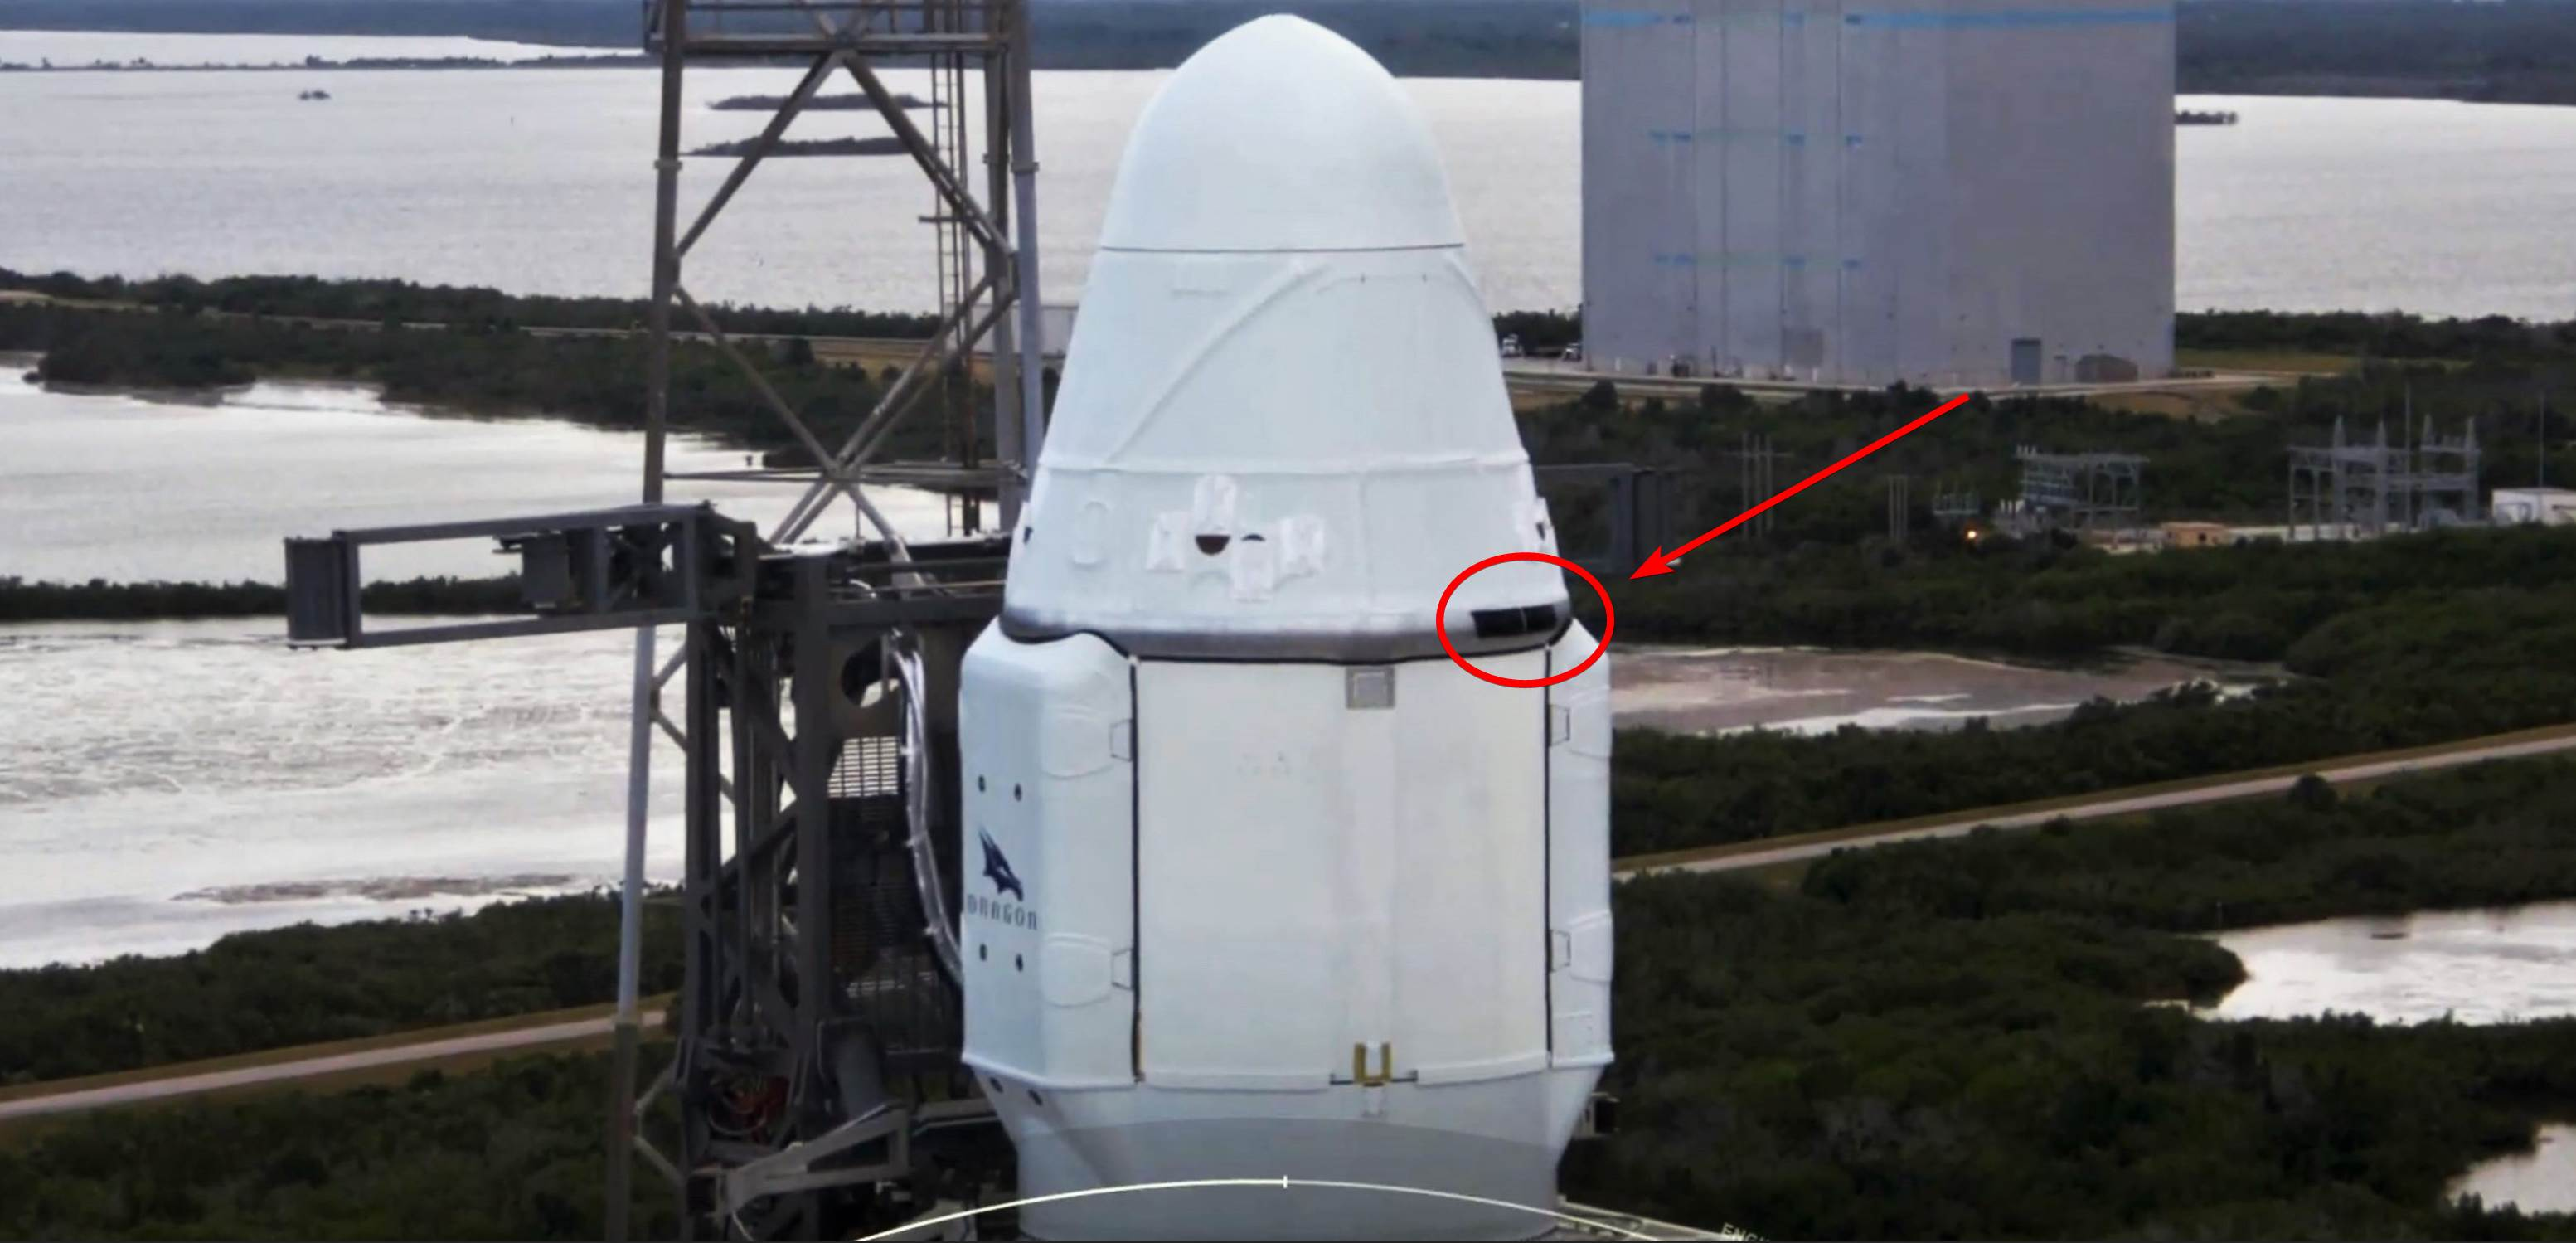 Spacex Testing Ceramic Starship Heat Shield Tiles On